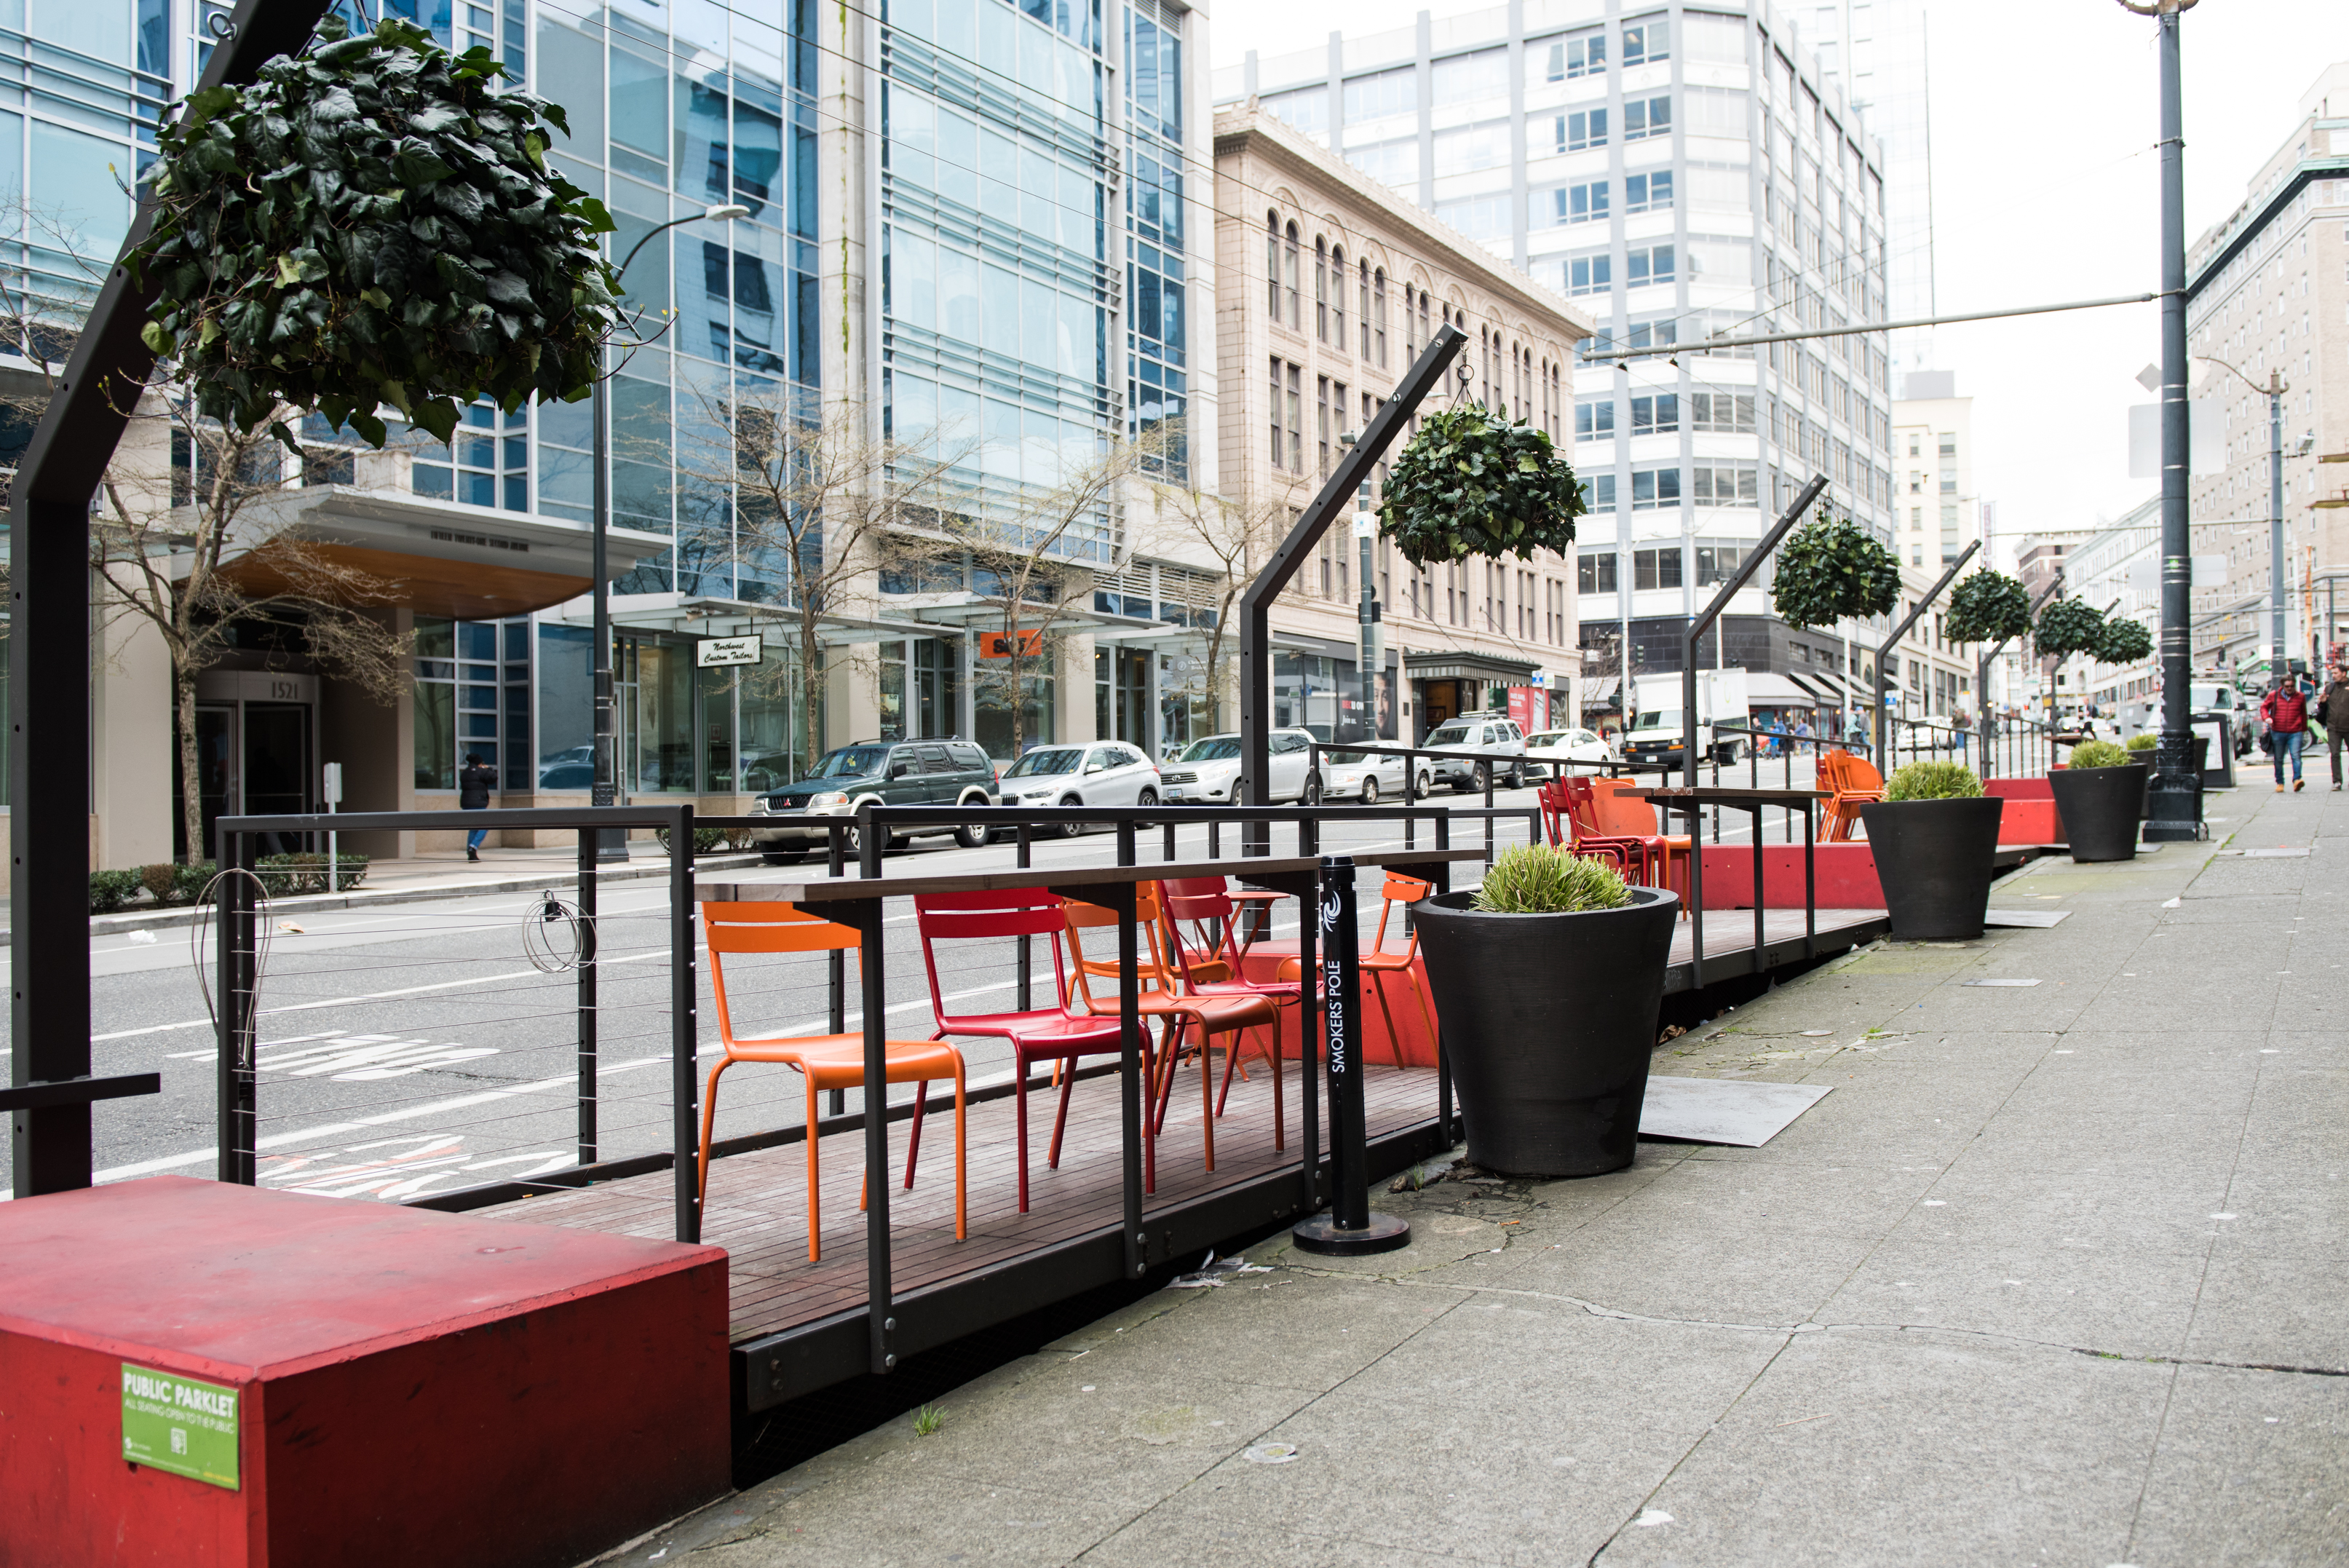 Chromer Market Parklet: However, the Chromer Market parklet won't be around for long, in just a couple of weeks it will be removed to make way for an extended bike lane along 2nd Avenue, and there won't be room for the parklet any longer. (Image: Natalia Dotto)